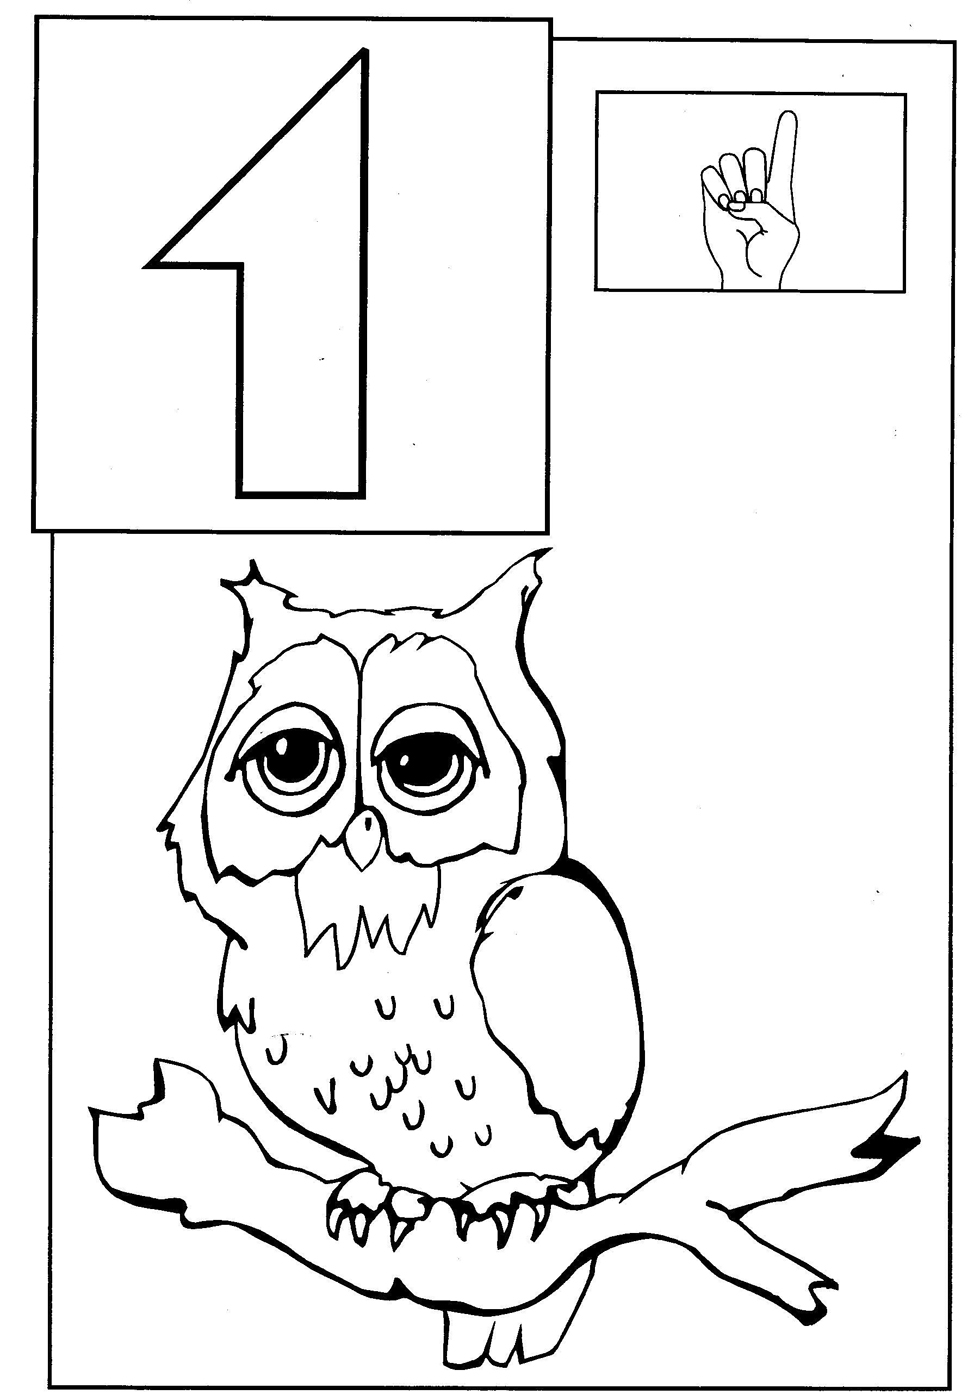 Toddler Coloring Pages | animal coloring pages for toddlers